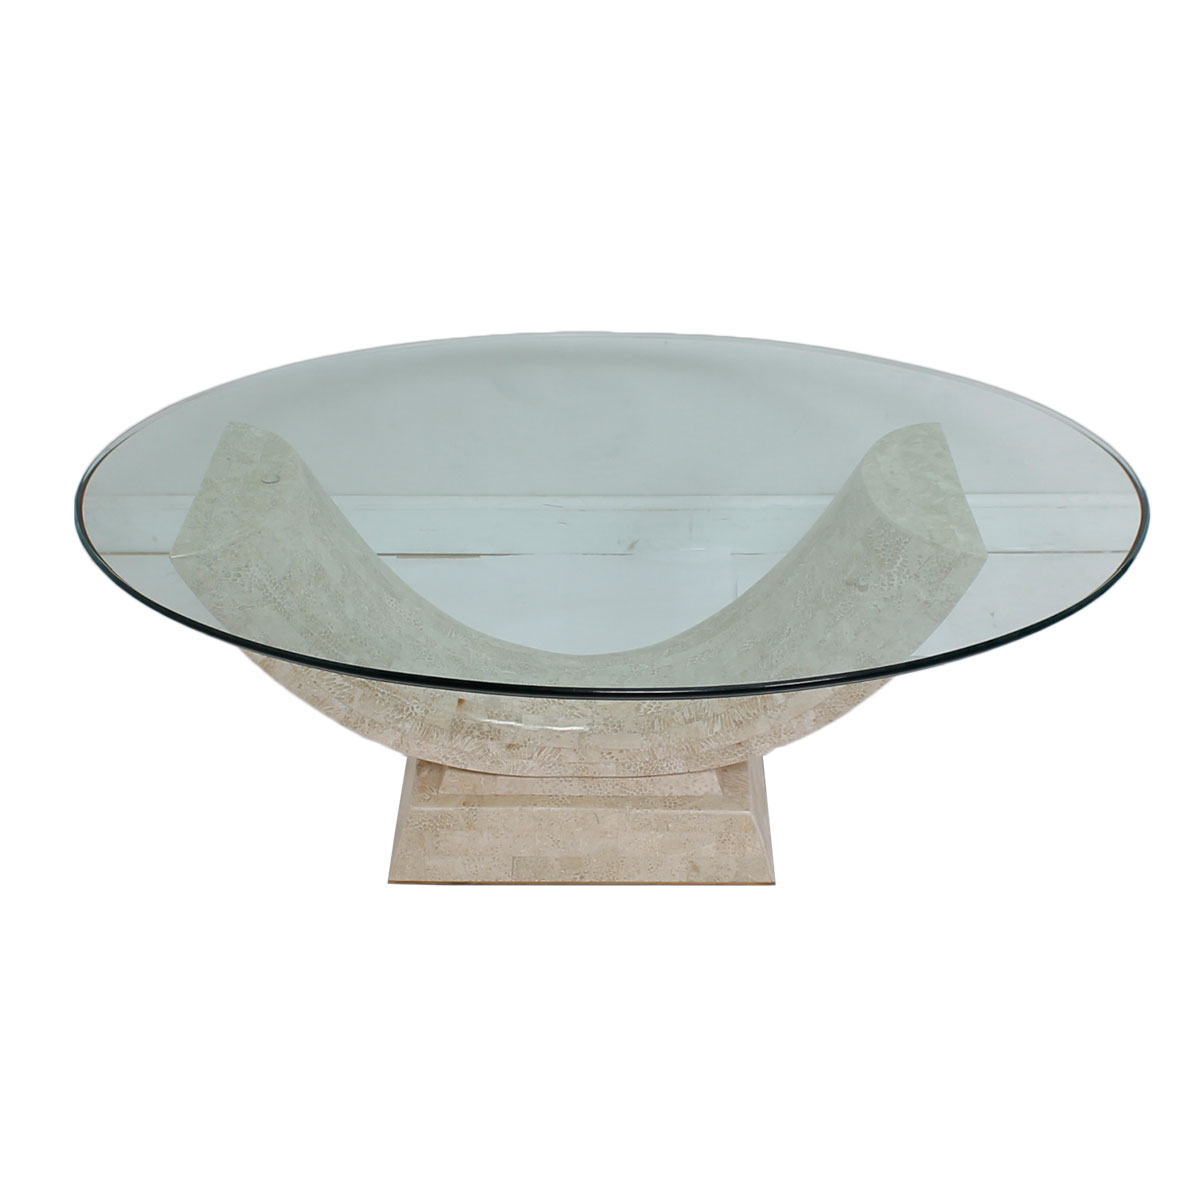 Modern mobler Glass oval coffee tables